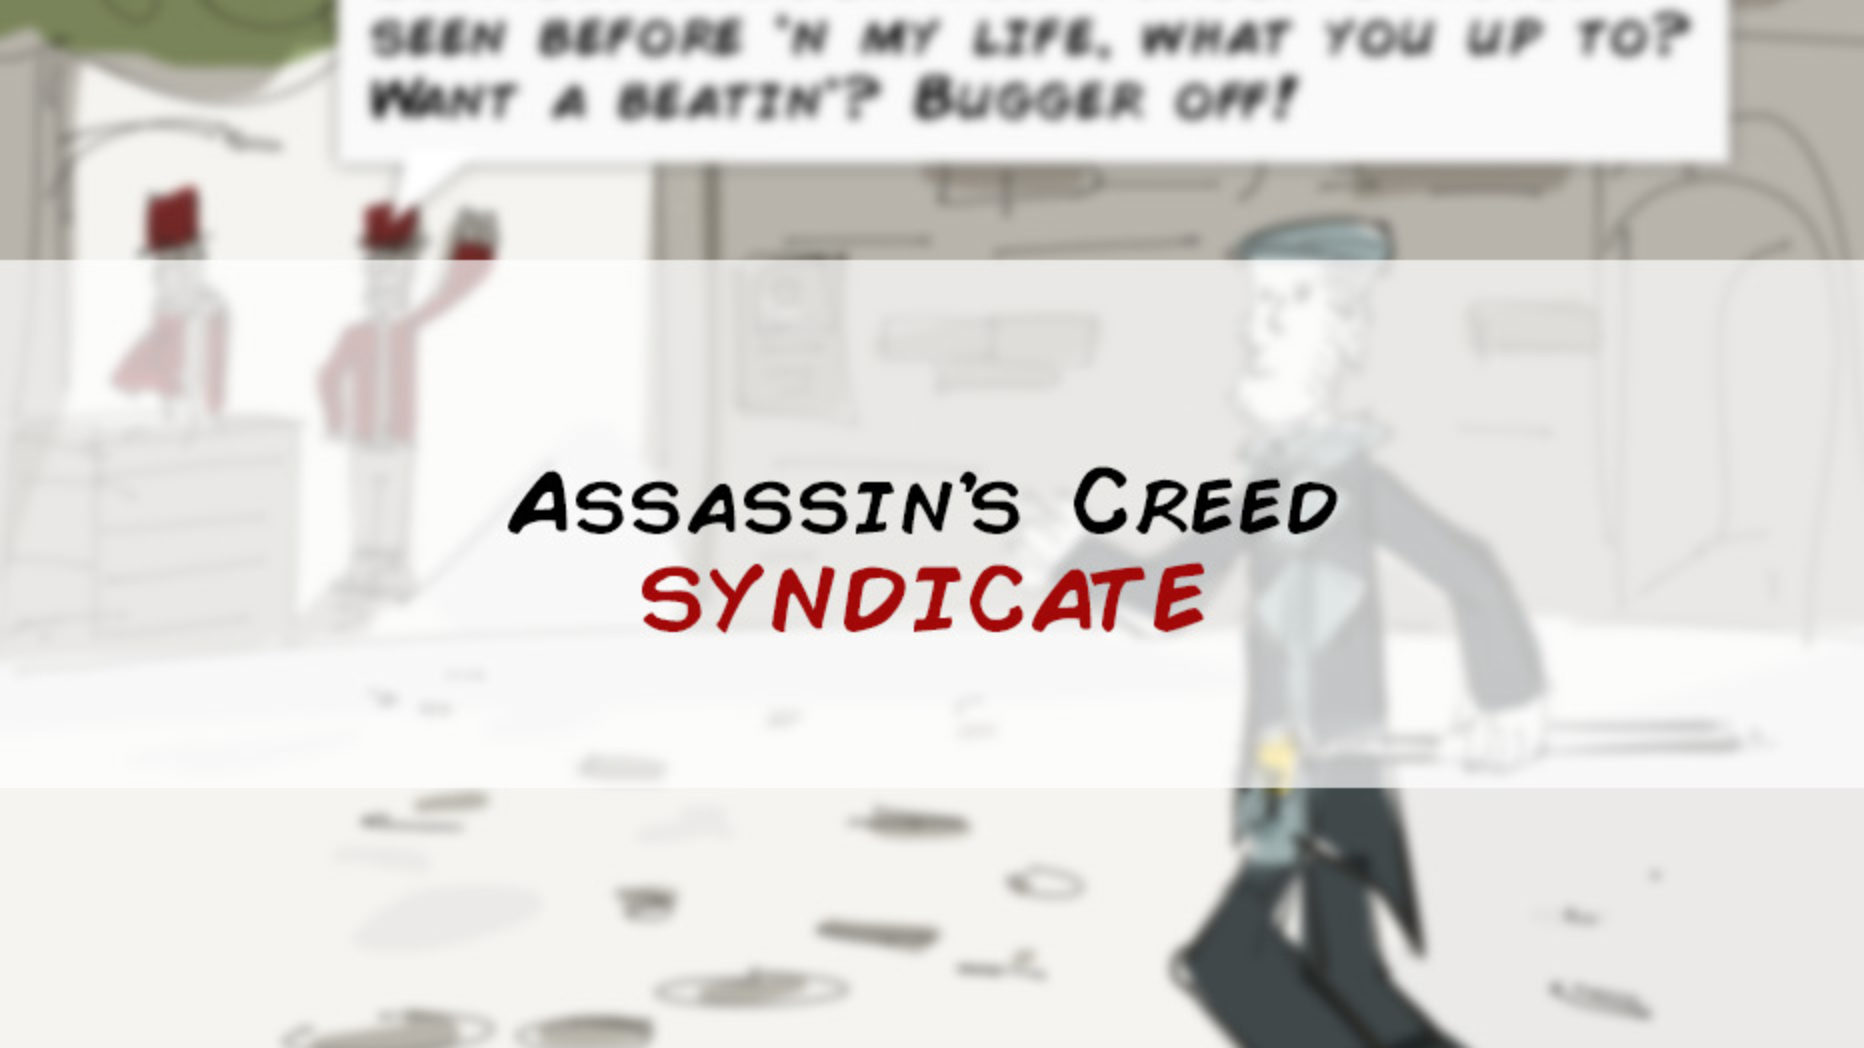 Web Comic: Assassin's Creed: Syndicate